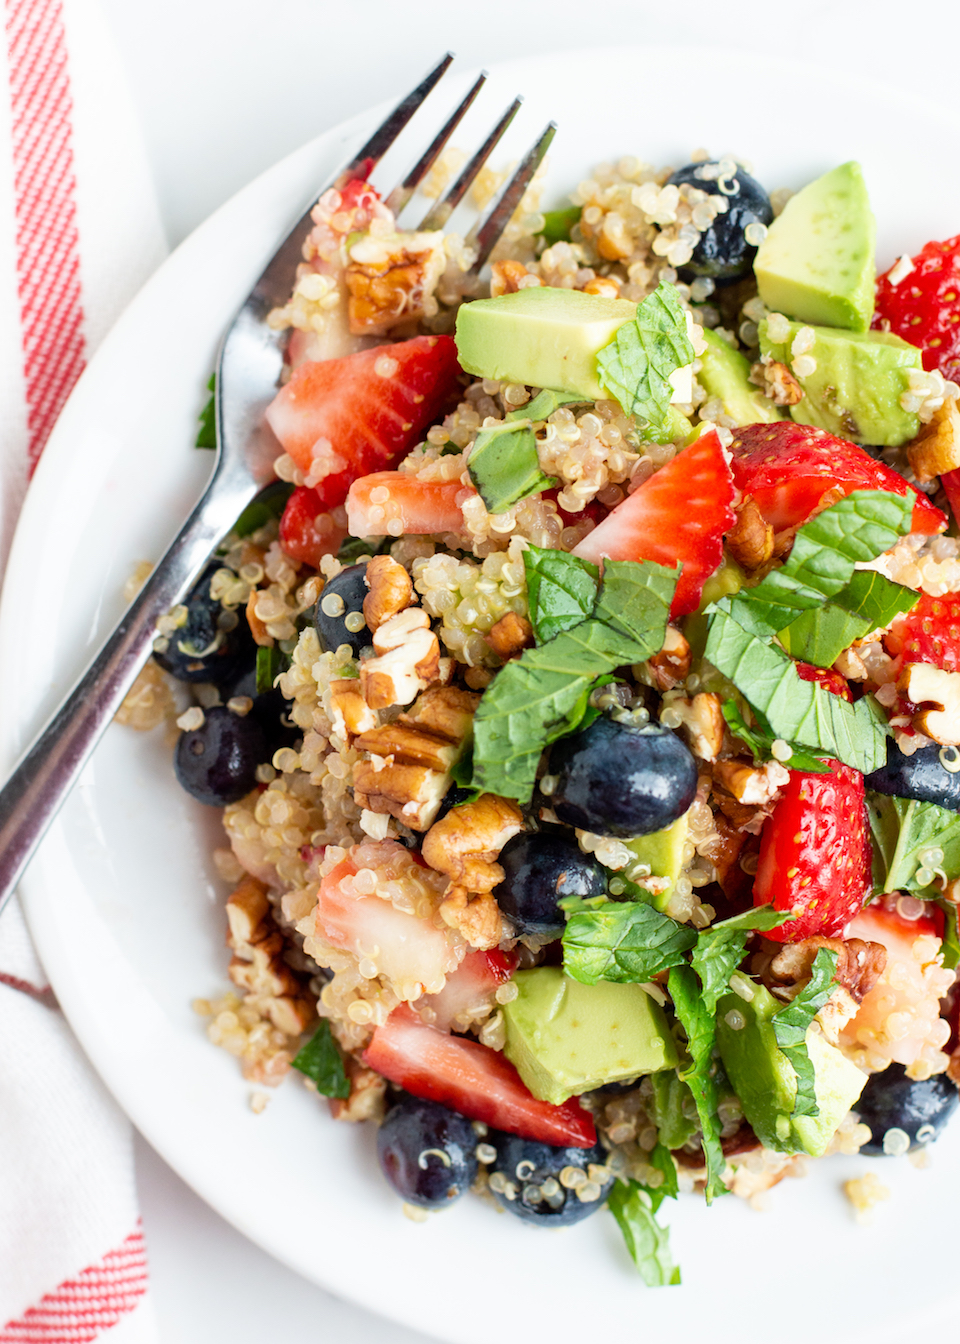 Summery Mixed Berry Quinoa Salad with Avocado